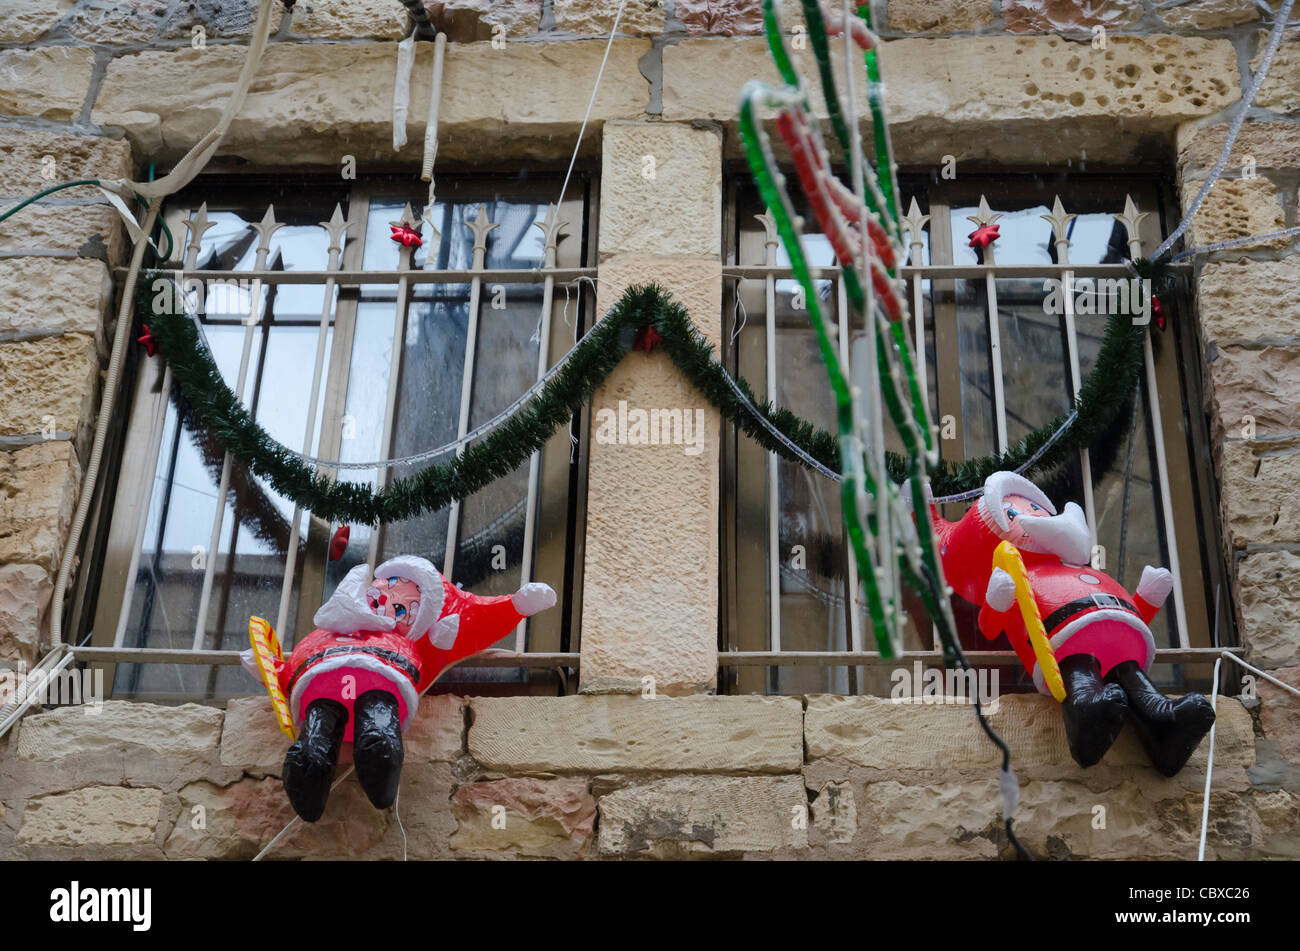 dummies of Santa Klaus hanging at window in Christian Quarter. Jerusalem Old City. israel Stock Photo